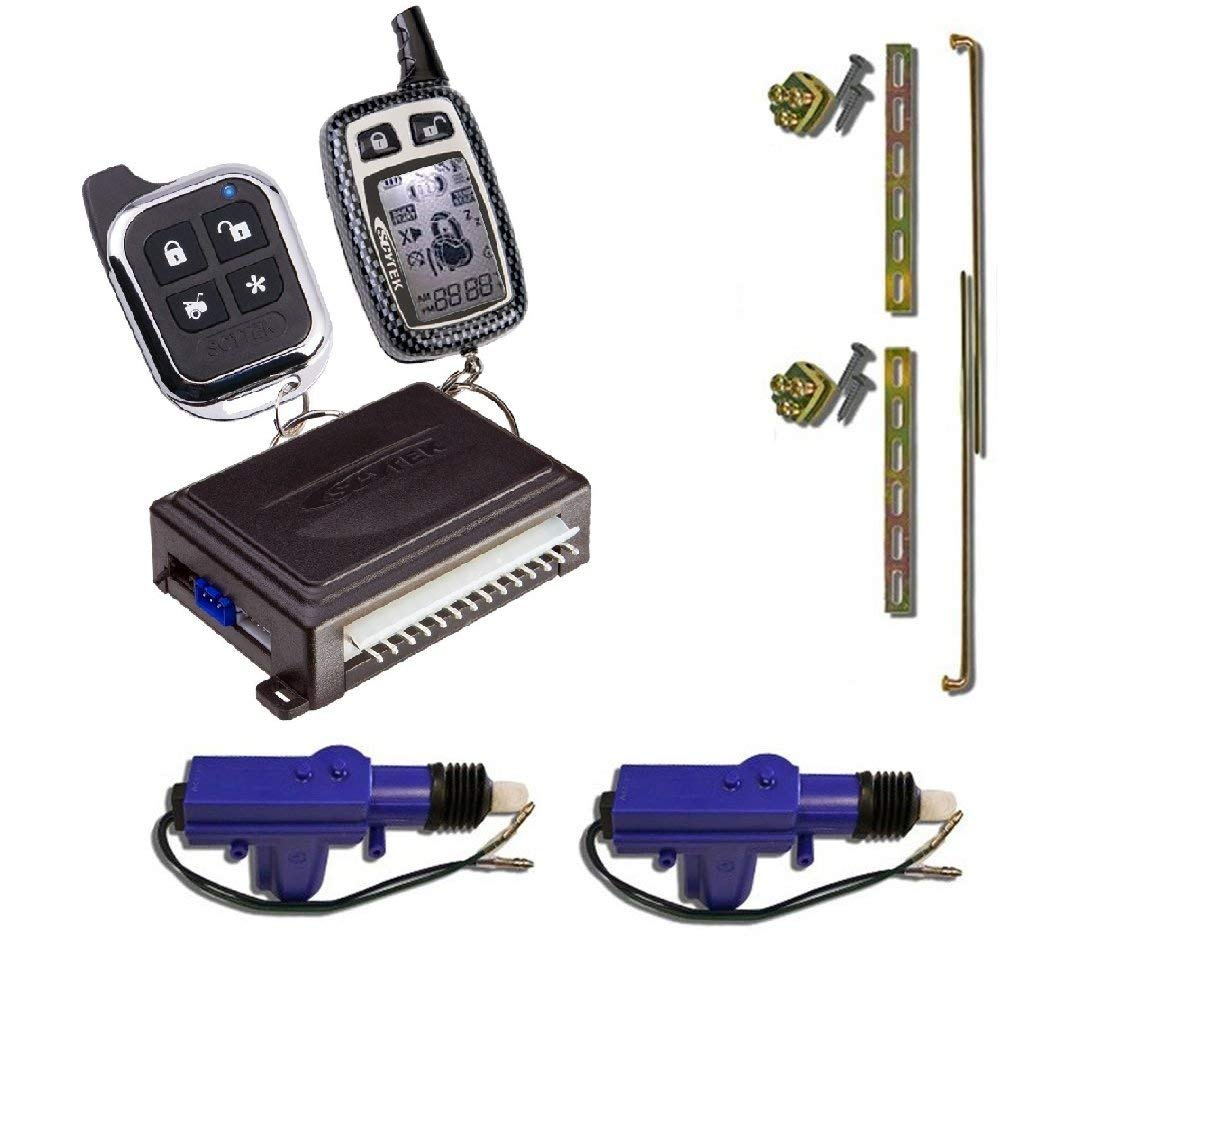 Cheap Power Door Lock Wiring Find Deals On Wireless Magnetic Diagram Get Quotations Scytek A777 Complete Two Way Remote Security System 2 Heavy Duty Universal 12 Volt